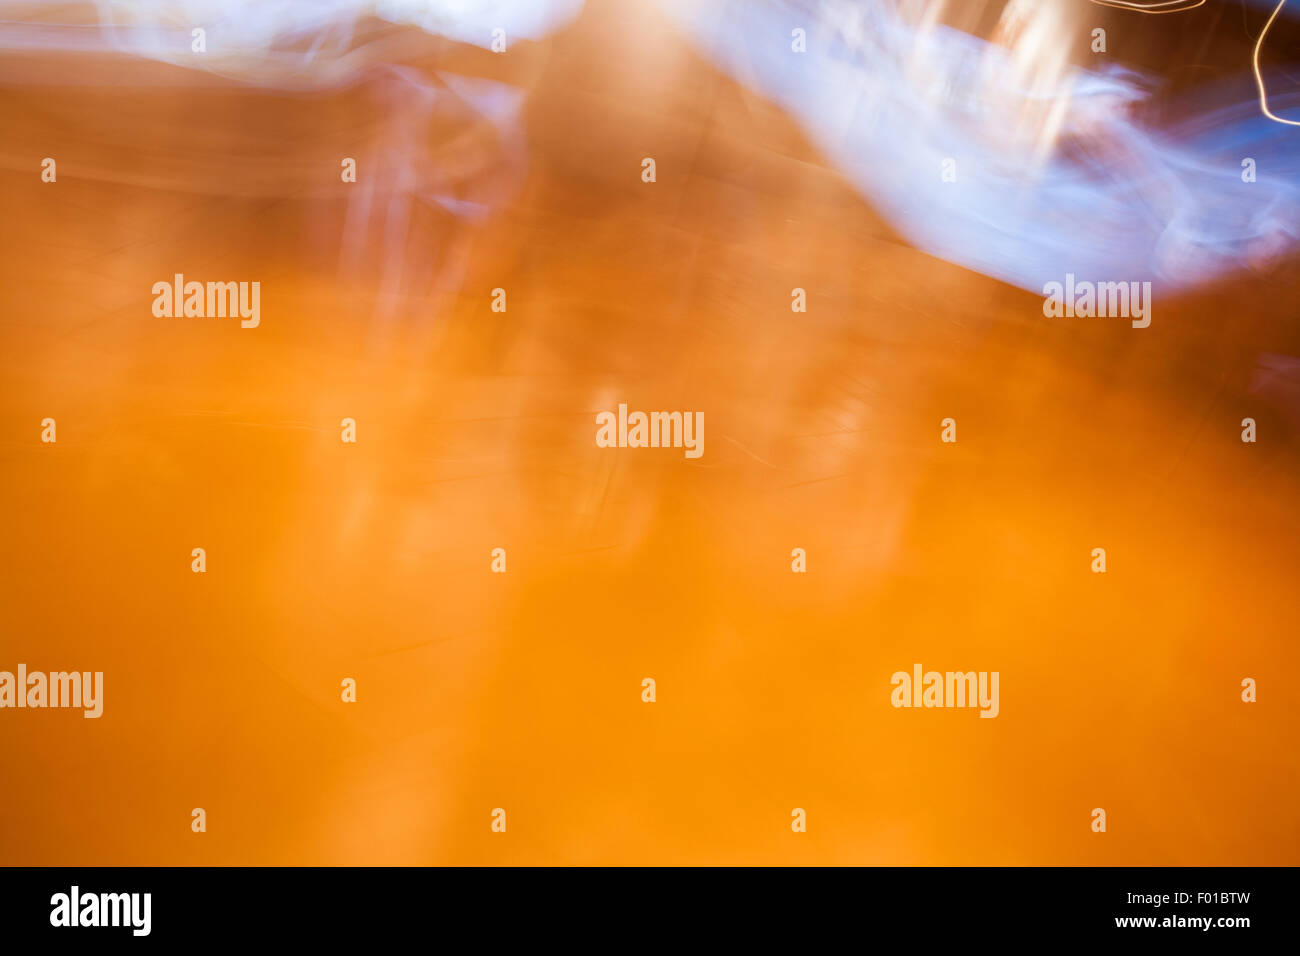 Abstract photo of motion and lights in orange and blue colors. - Stock Image